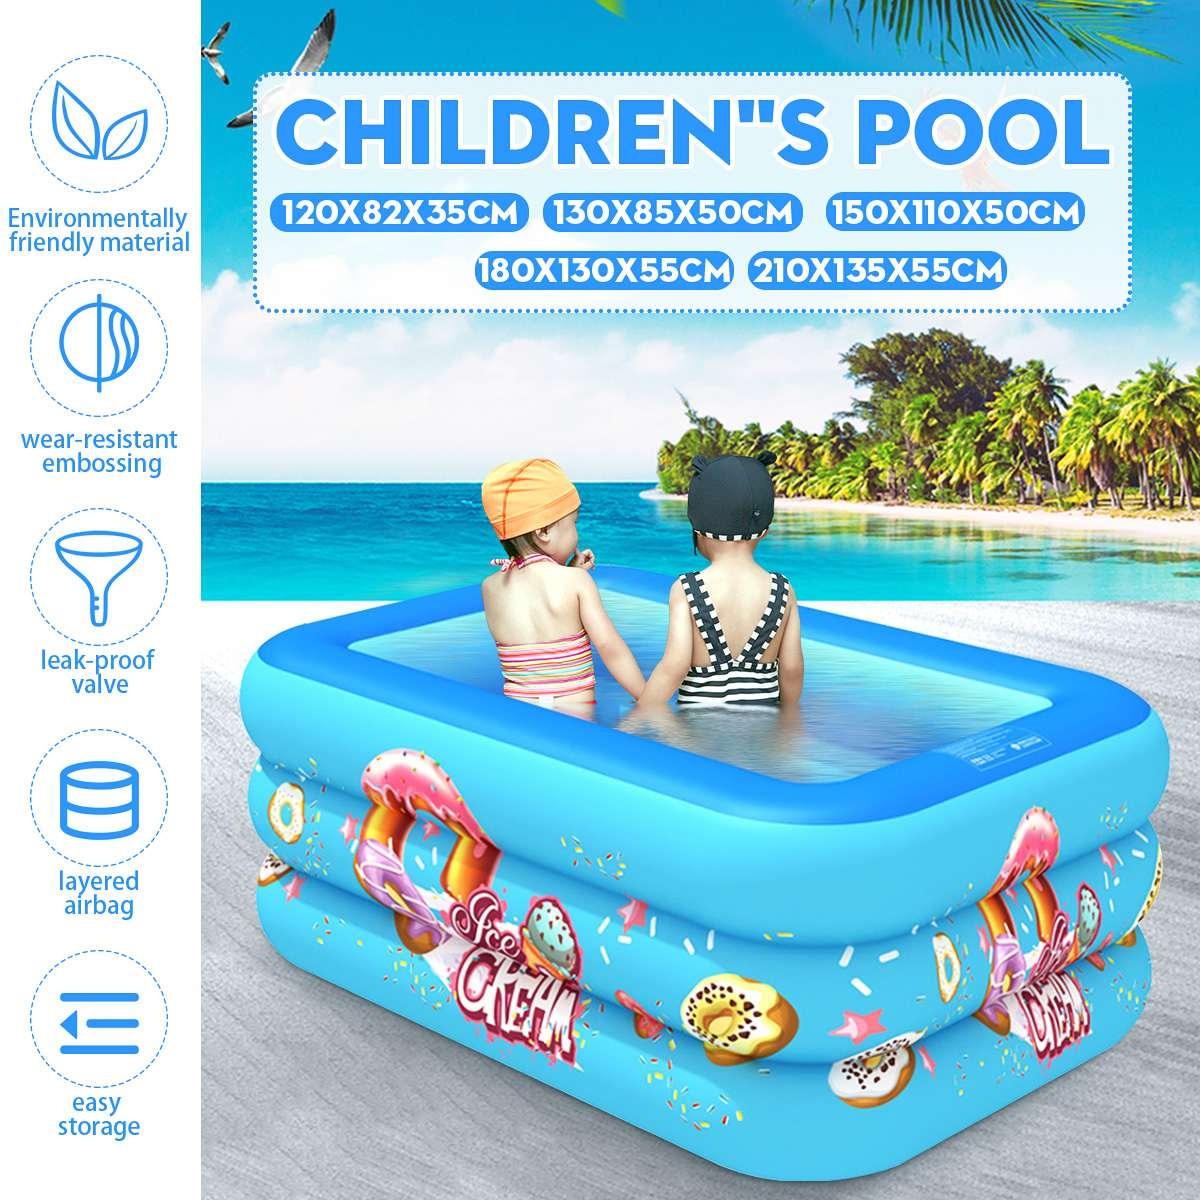 Kids Inflatable Pool Children's Home Use Paddling Pool Large Size Square PVC Swimming Pool For Toddler Non-slip Portable